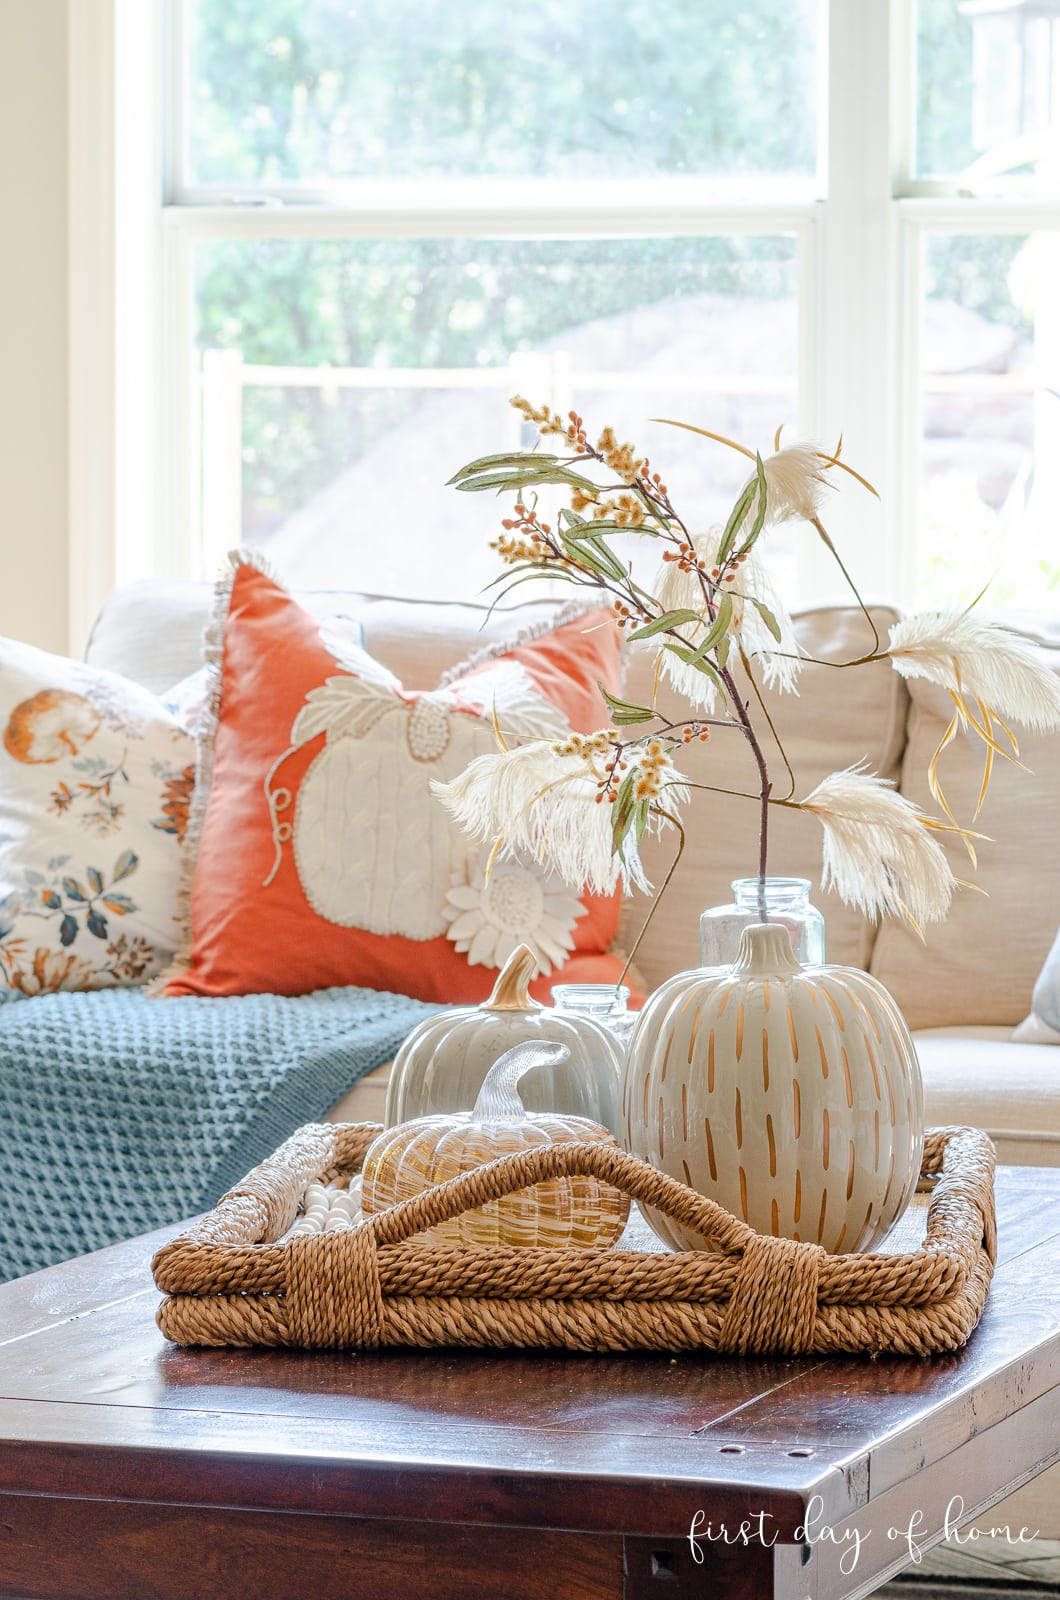 Fall living room tour with pumpkins and stems on coffee table tray and pumpkin throw pillows in background